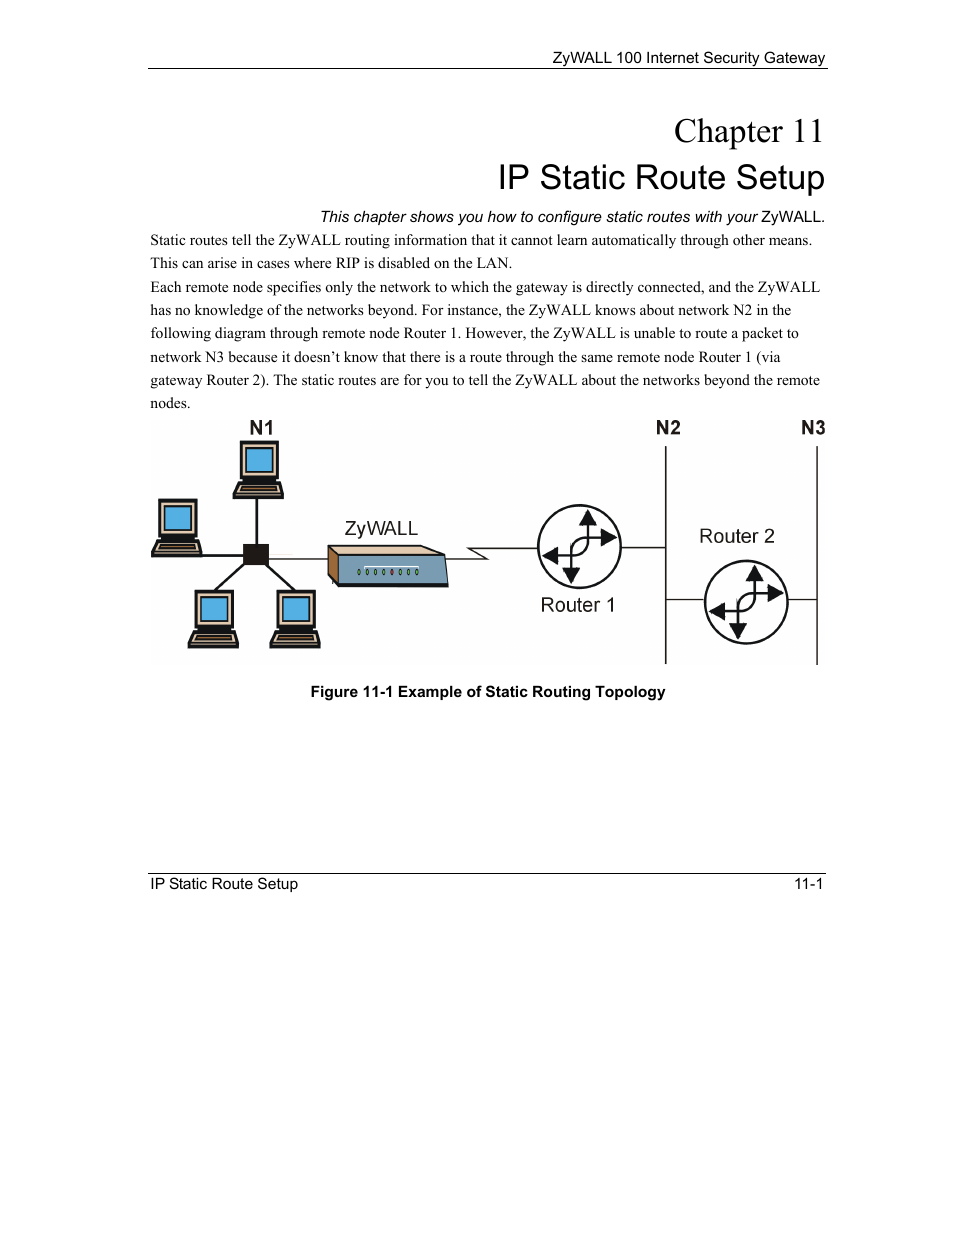 Ip static route setup, Chapter 11 ip static route setup | ZyXEL